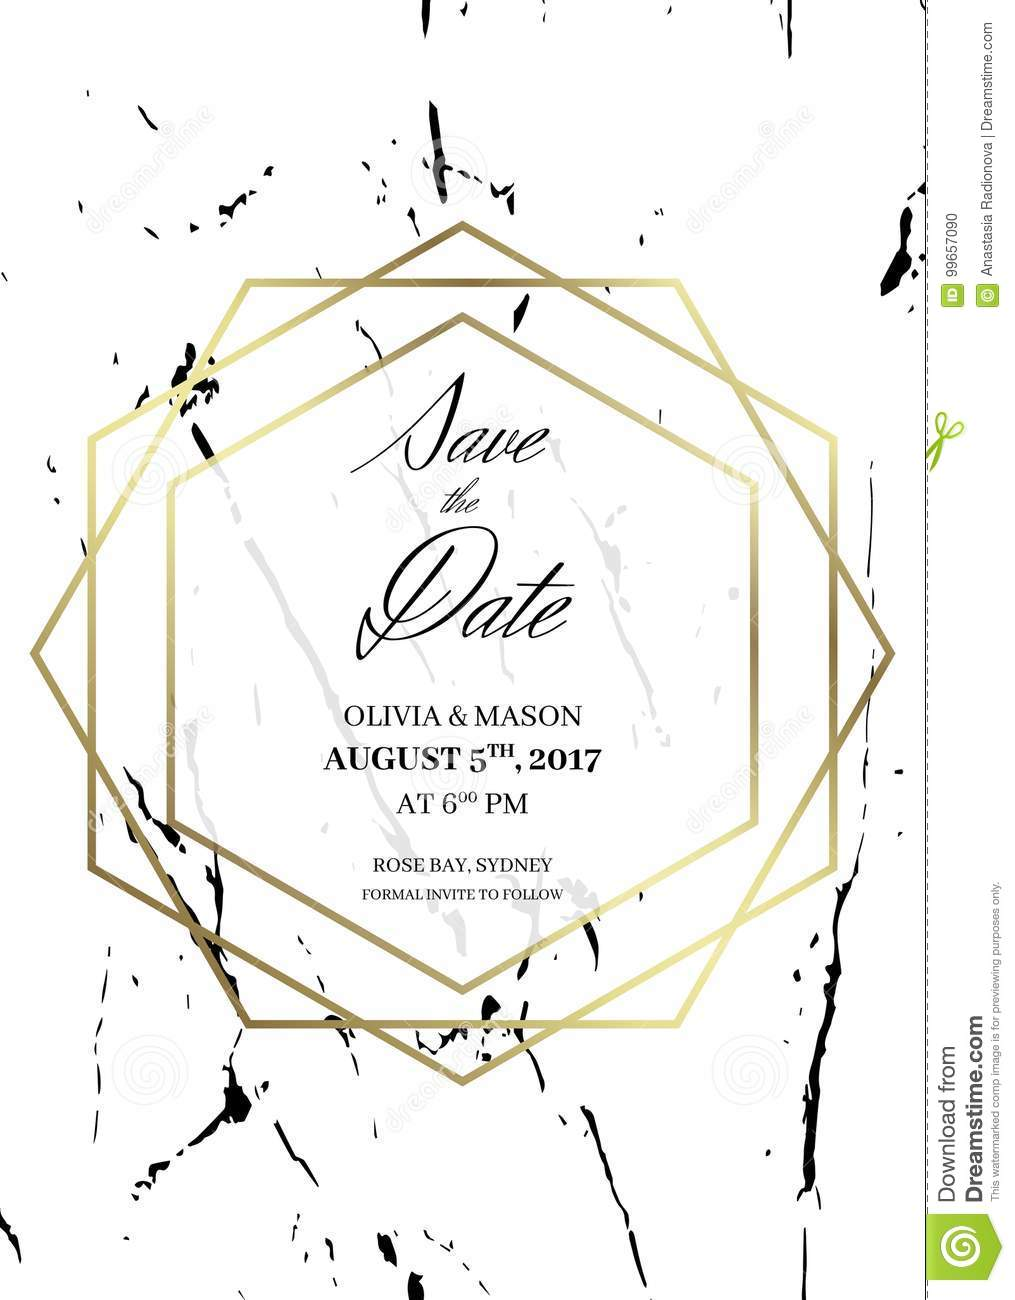 save the date design template for getting married stock vector